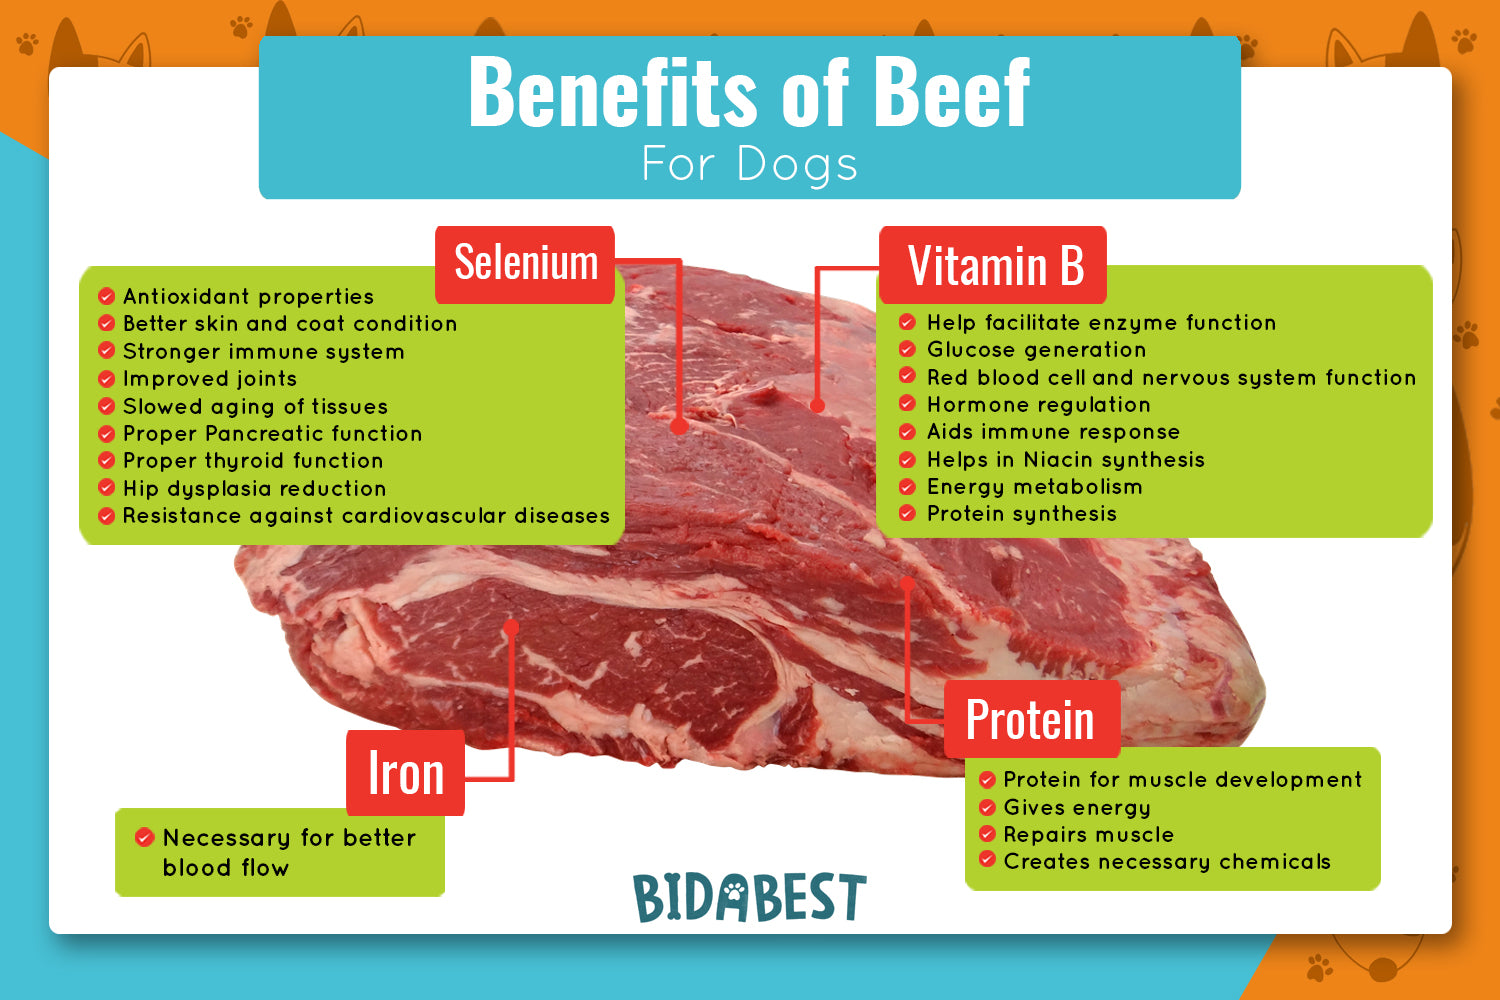 Benefits of beef for dogs